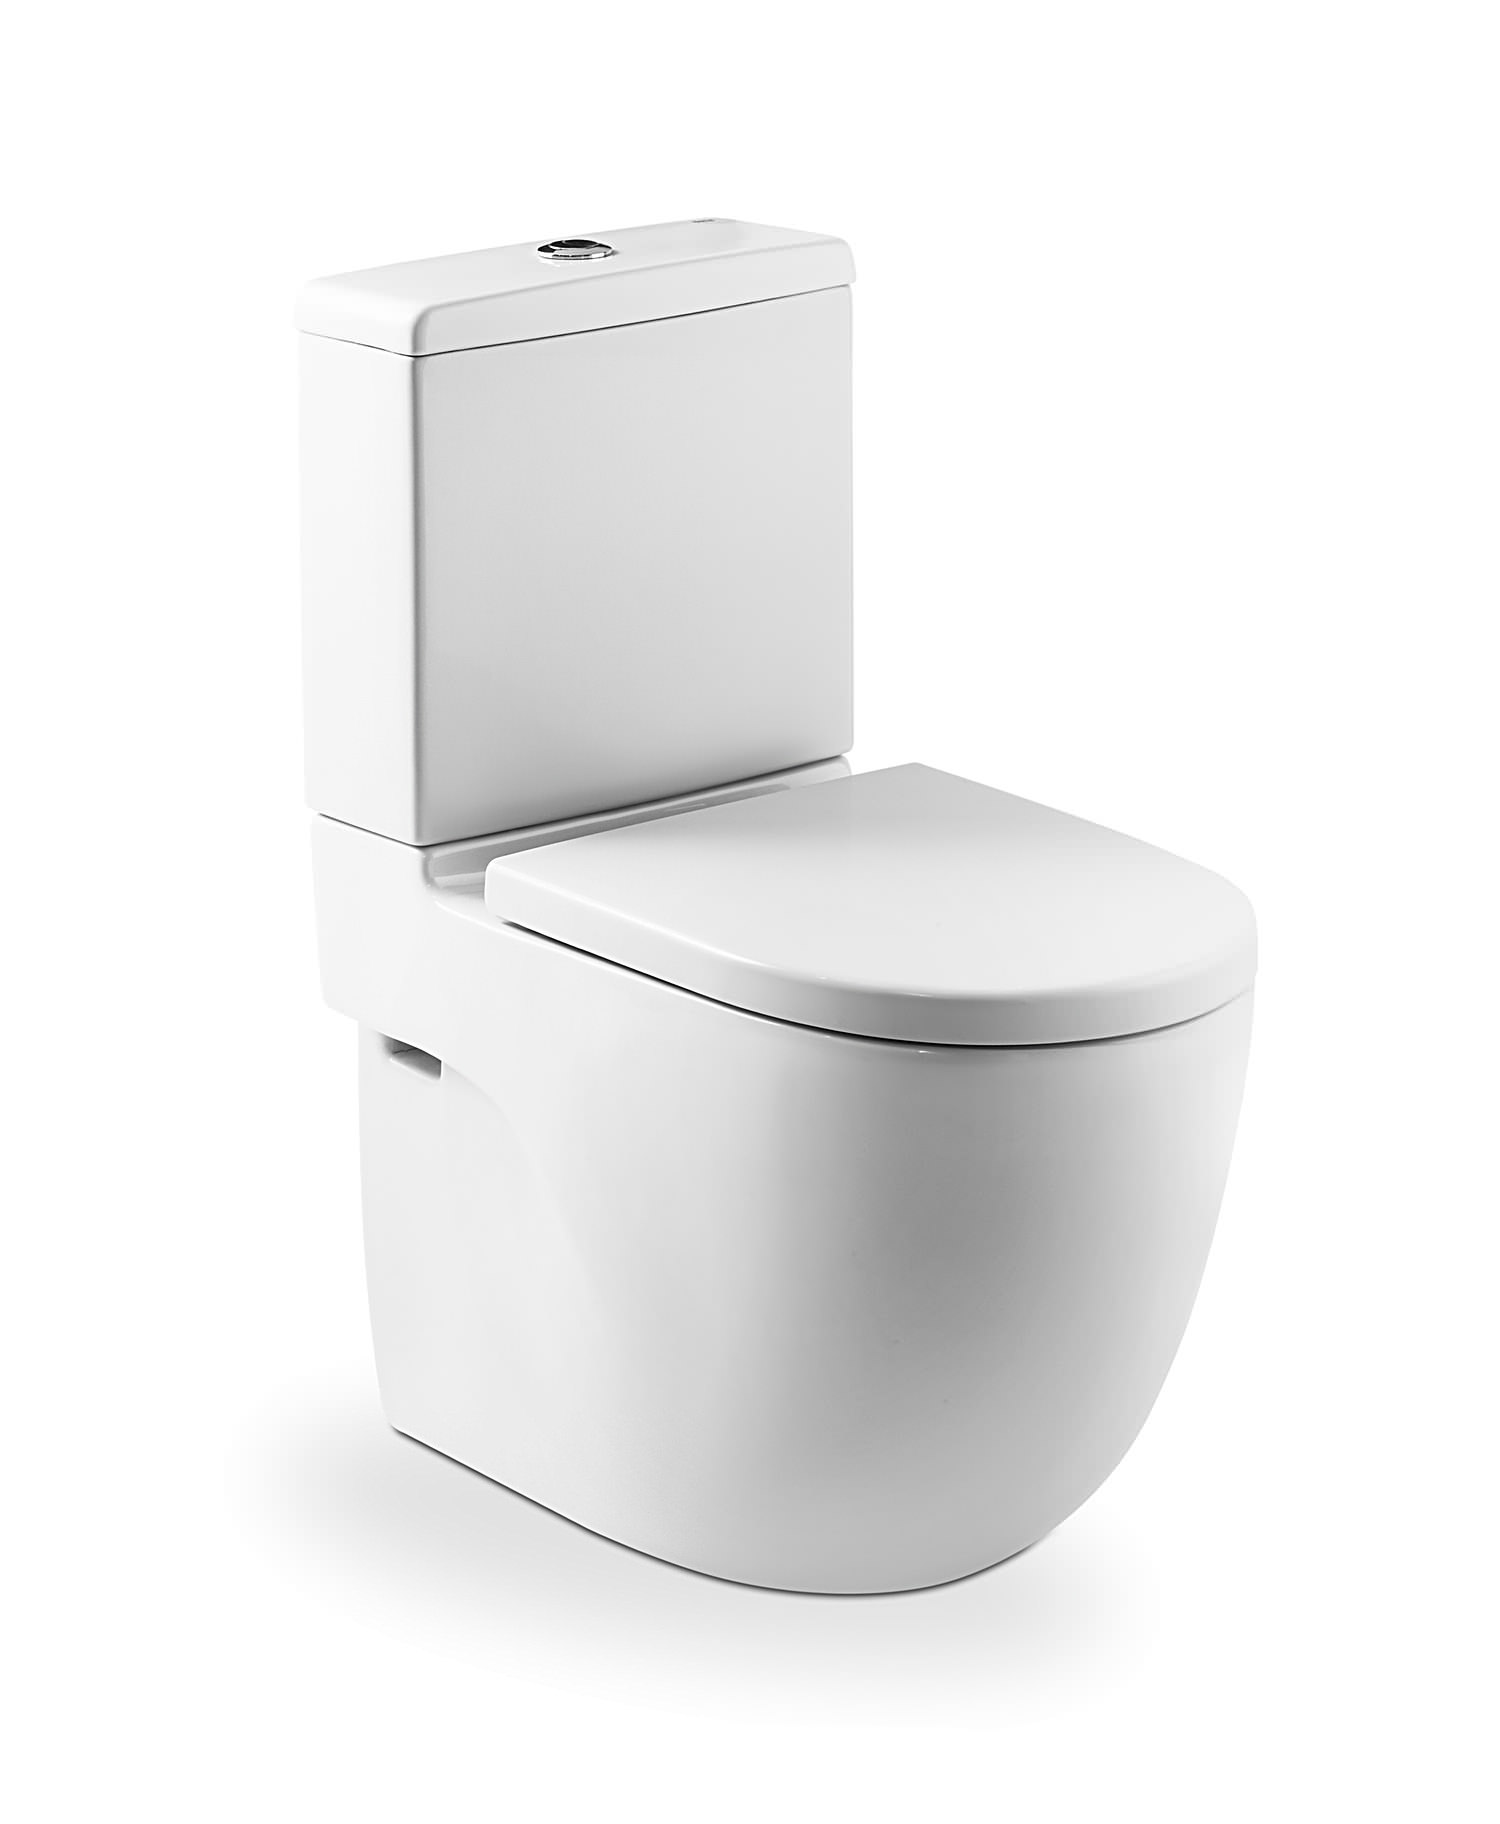 Repuestos De Sanitarios Roca Roca Meridian N Compact Back To Wall Wc Set 600mm 342248000